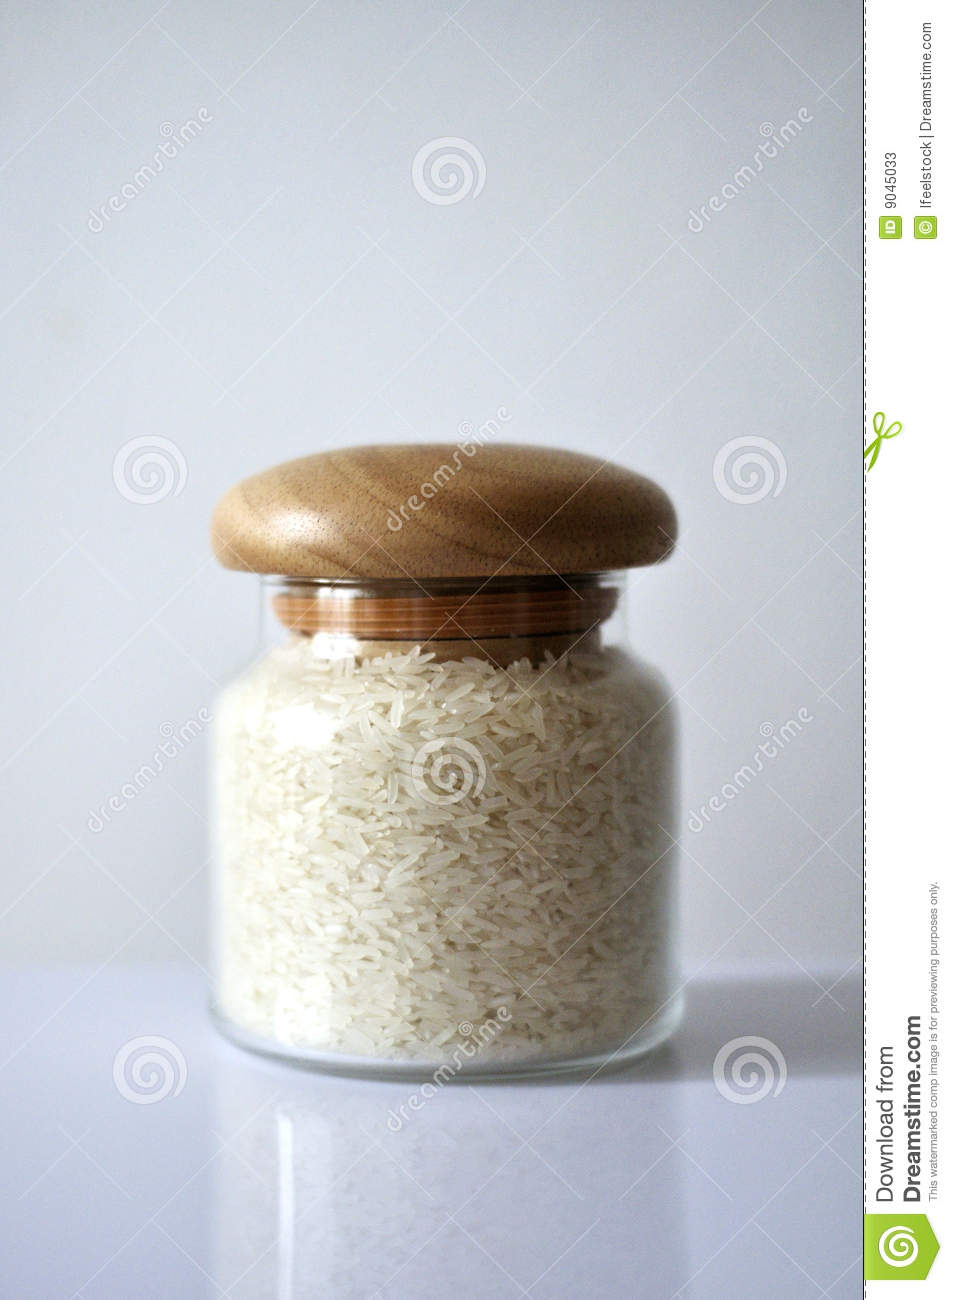 Rice in a glass jar stock image. Image of bright, garnish